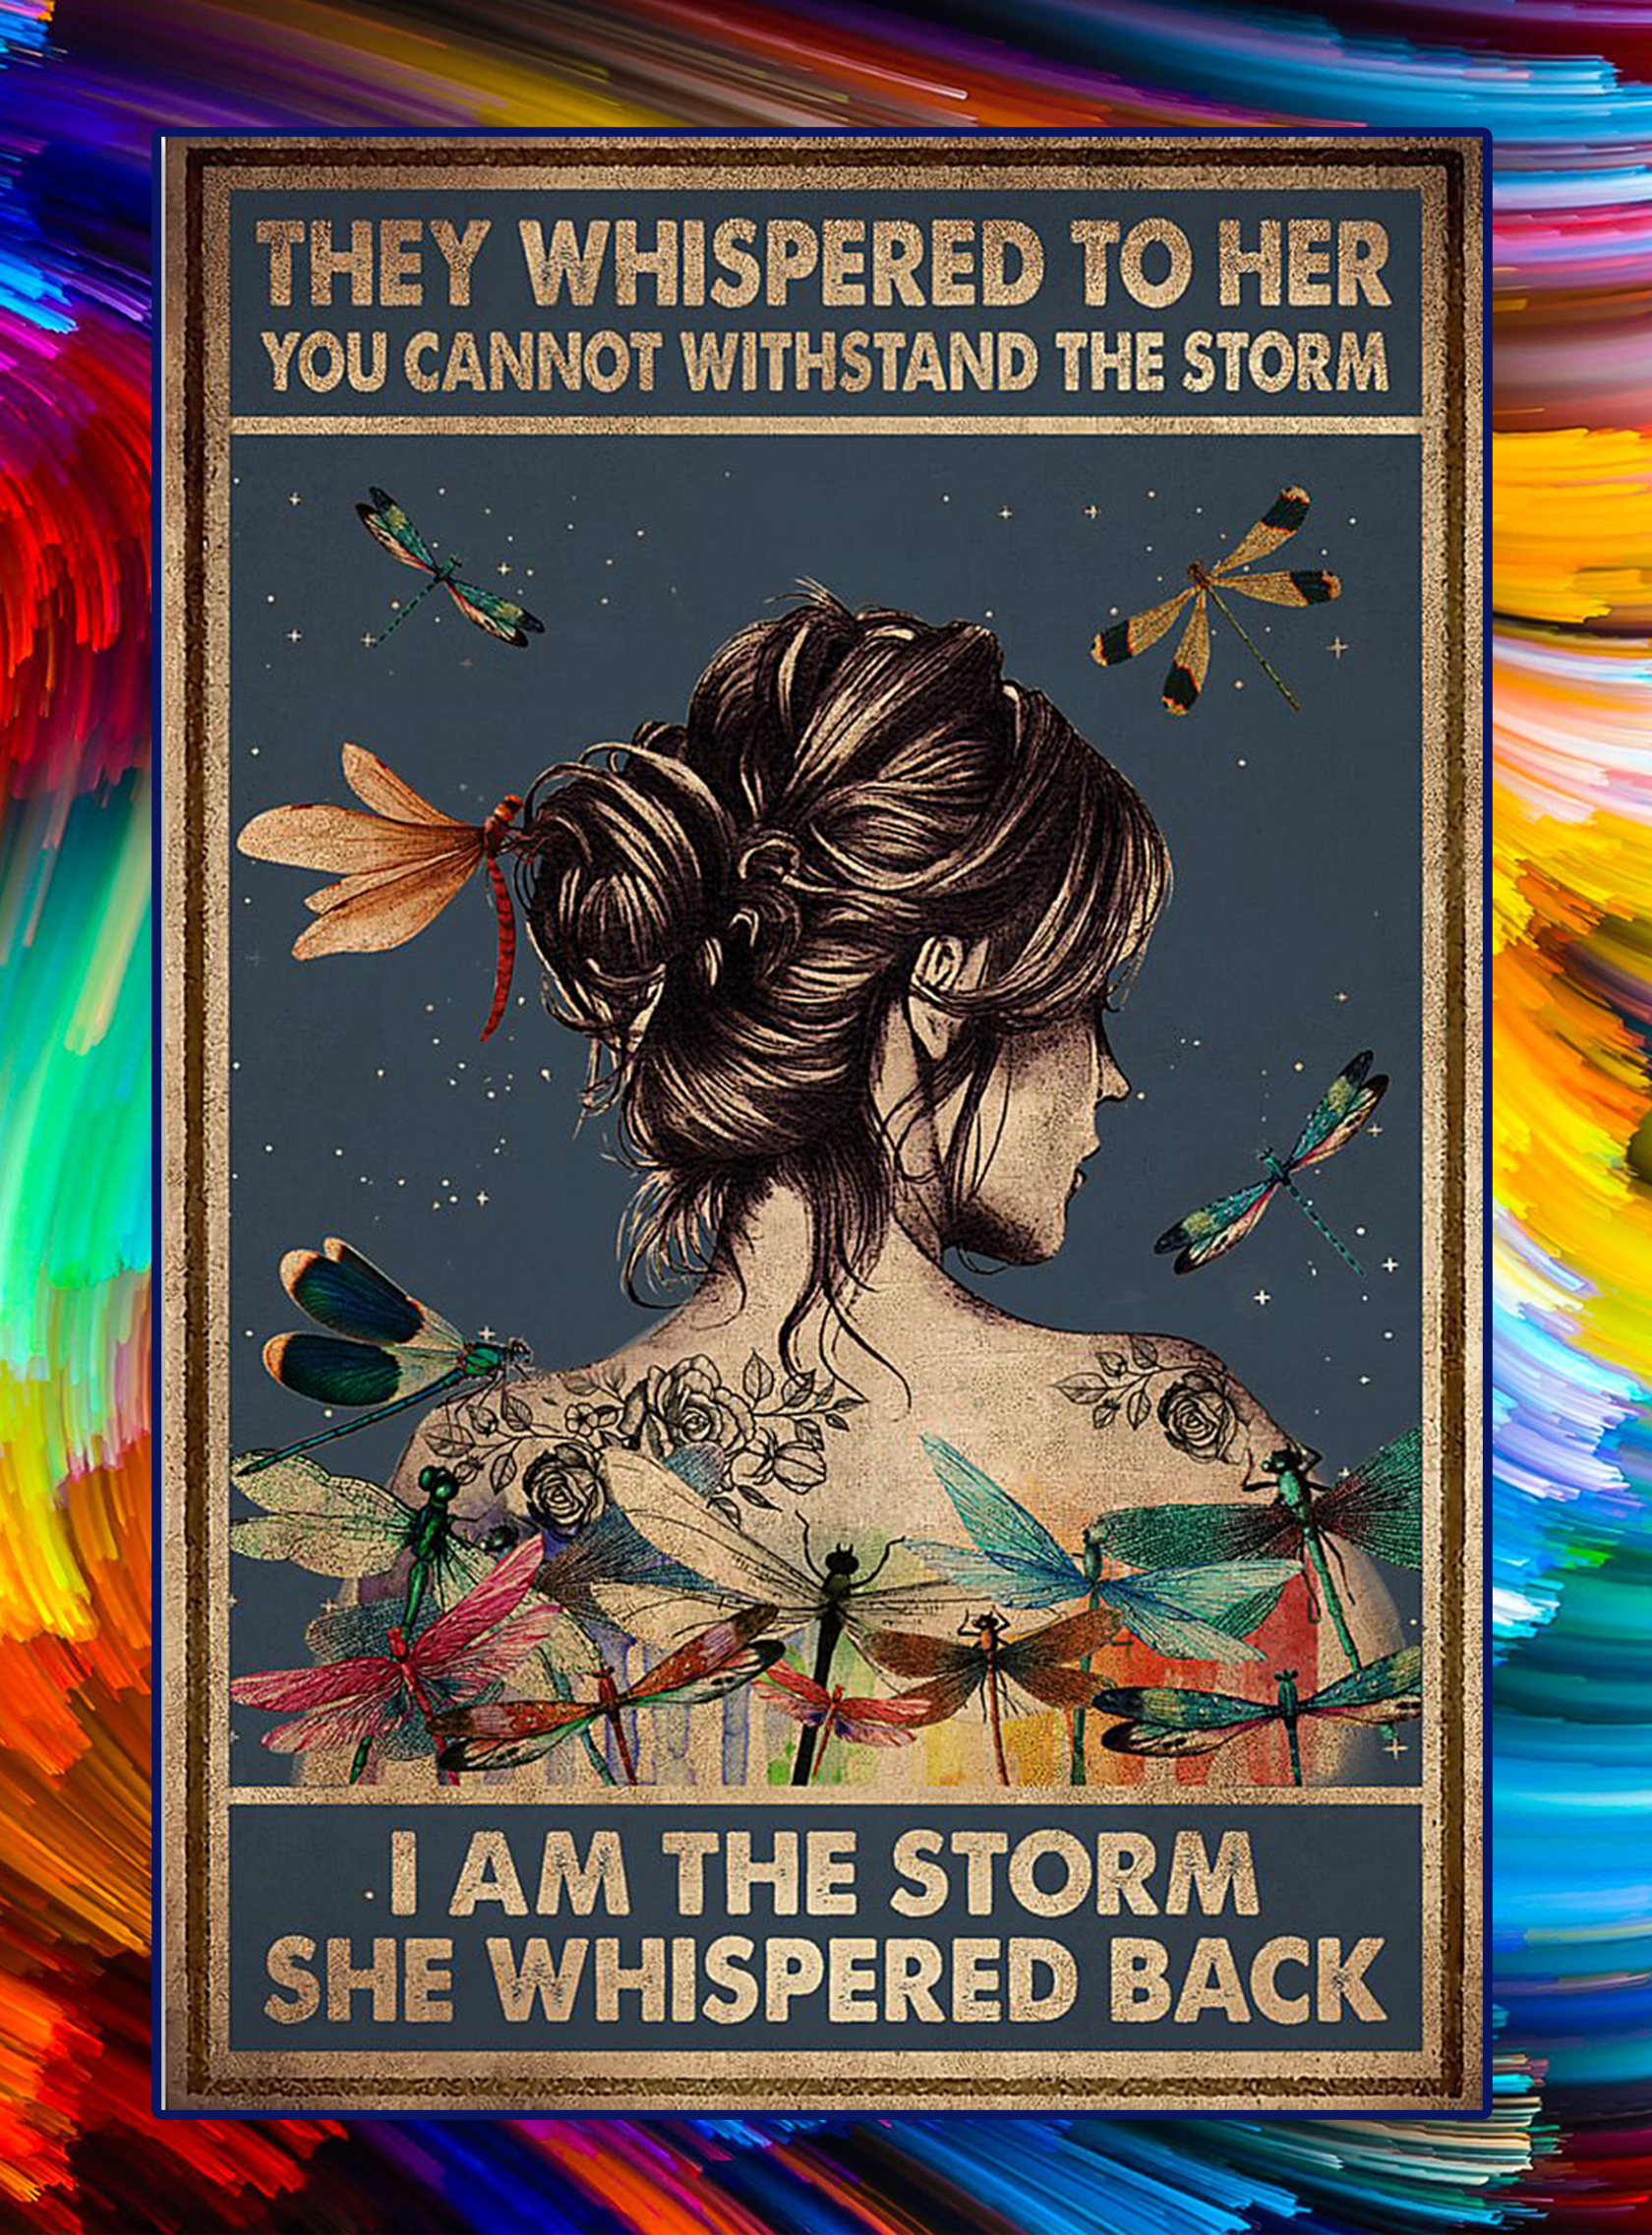 Hippie dragonfly they whispered to her i am the storm poster - A1